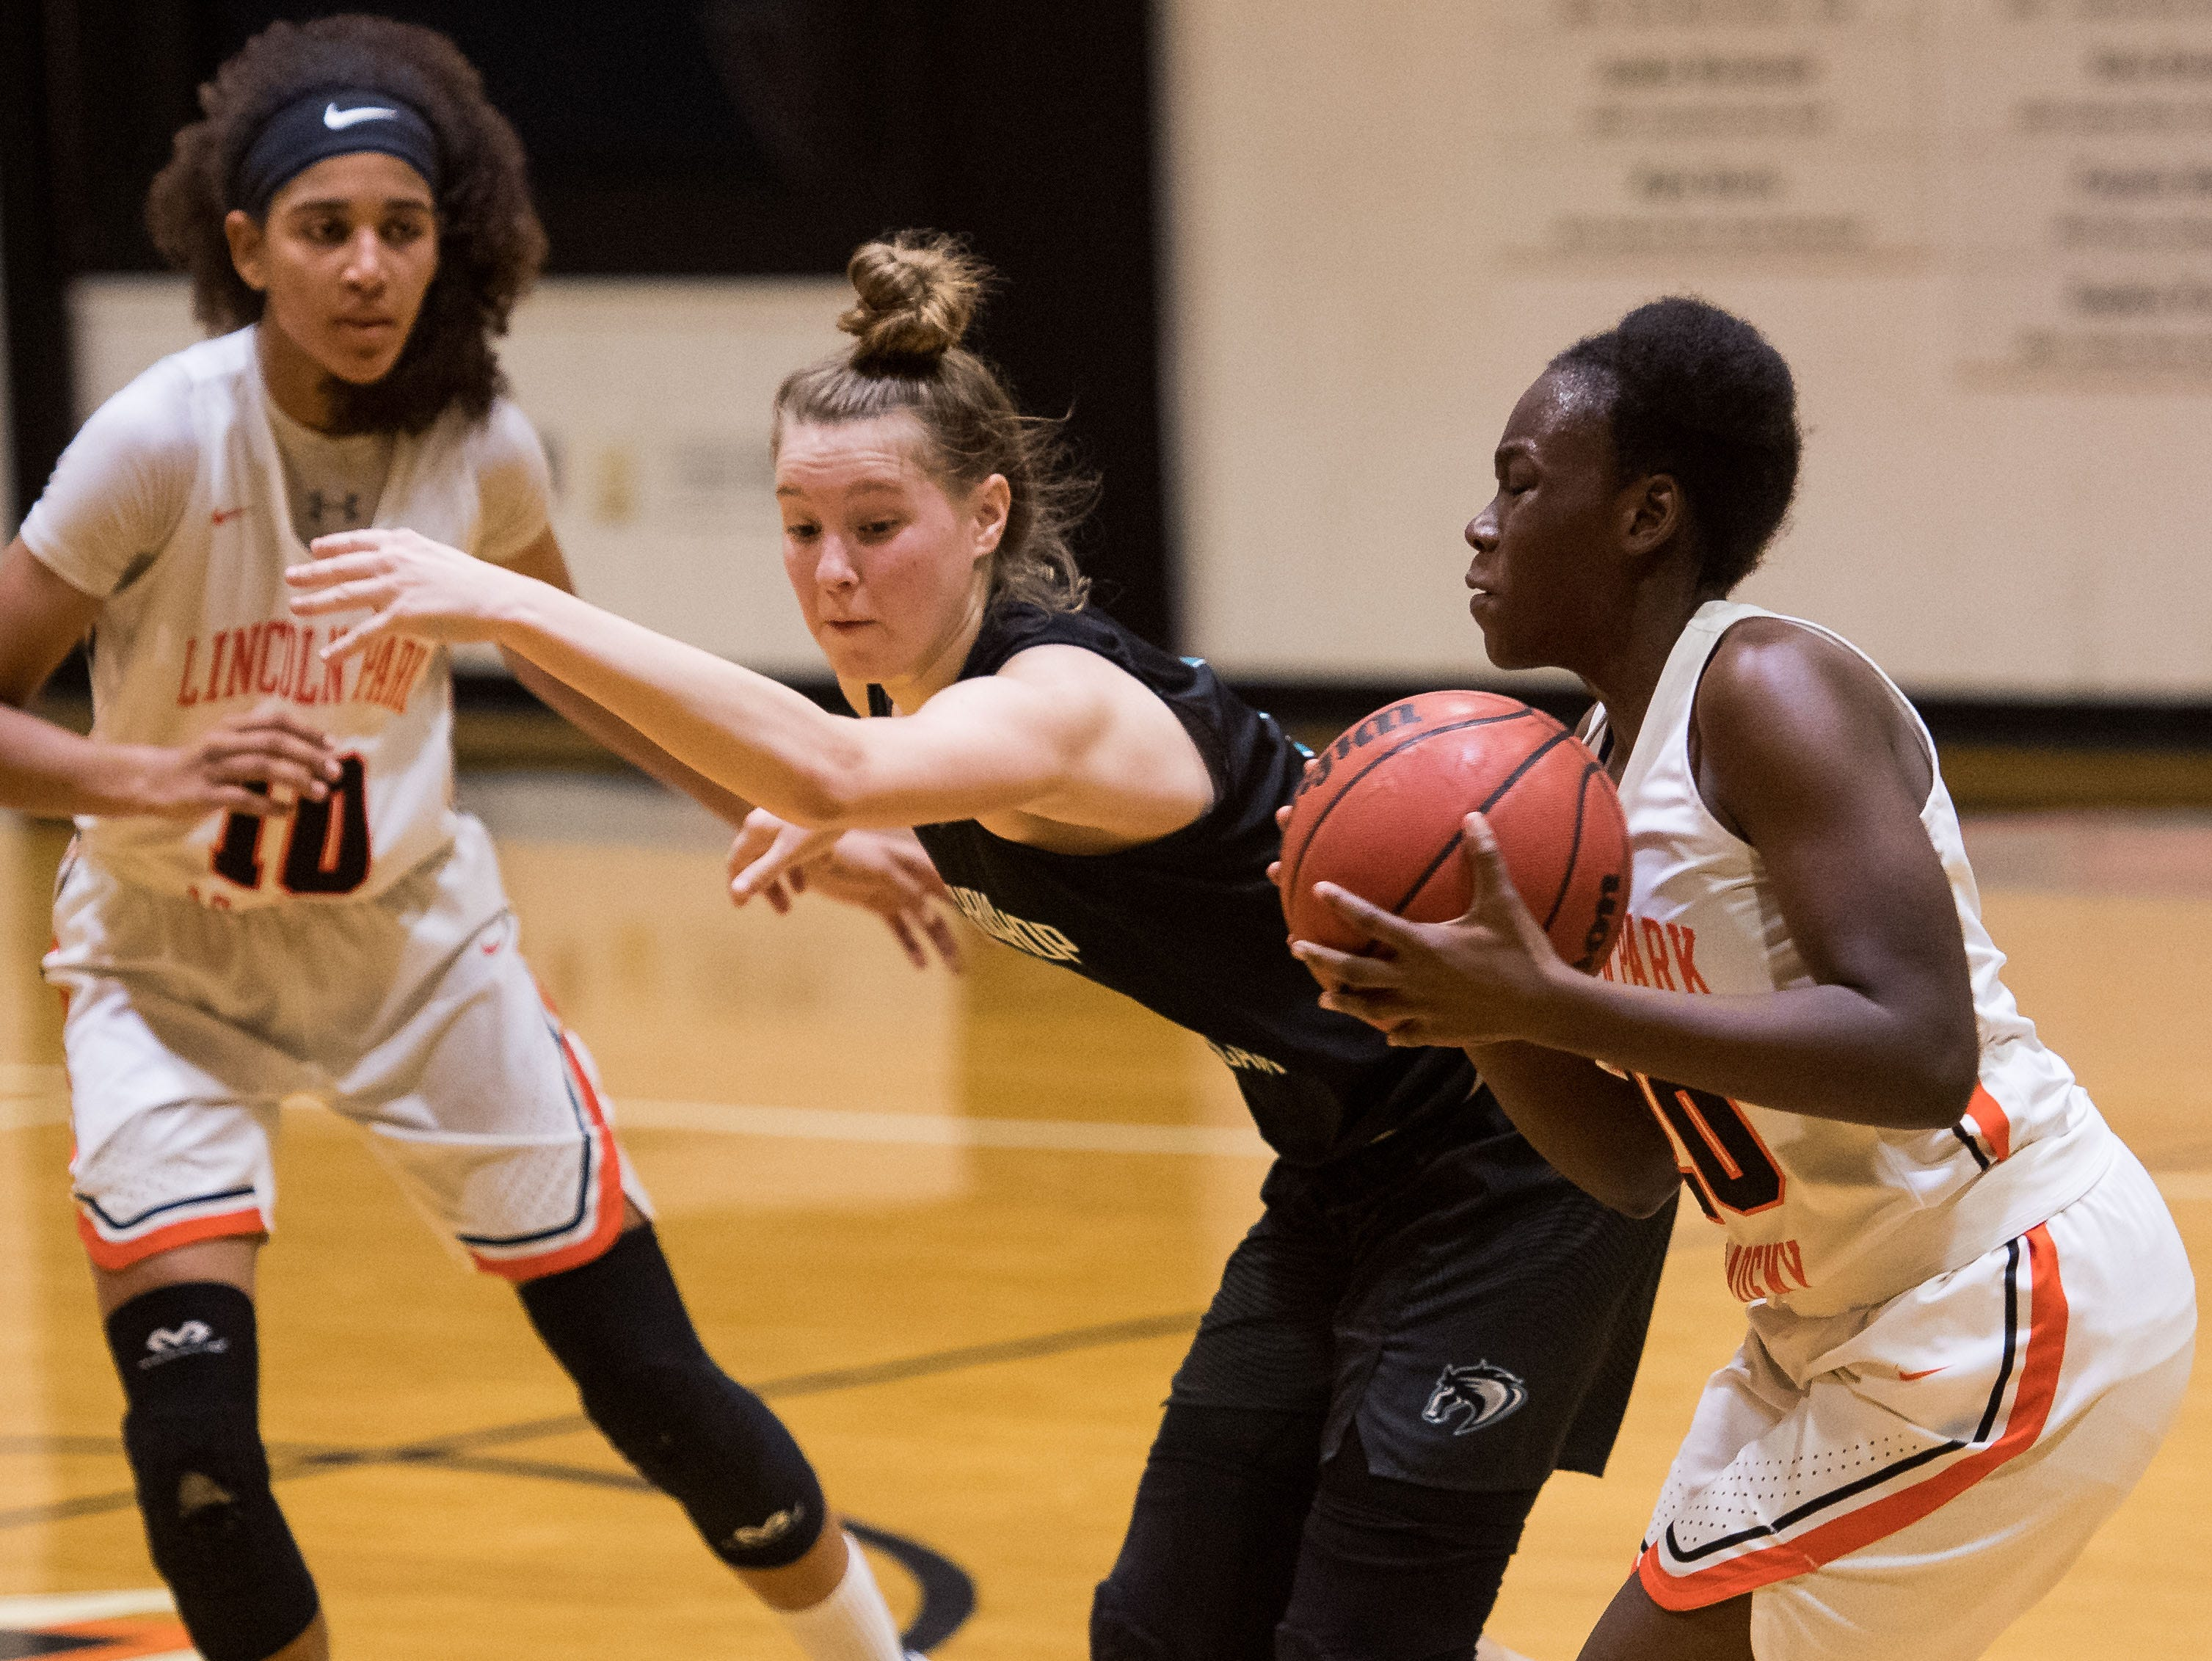 Lincoln Park Academy plays against Archbishop McCarthy (Fort Lauderdale) during the high school girls basketball regional quarterfinal game Thursday, Feb. 14, 2019, Lincoln Park Academy in Fort Pierce.